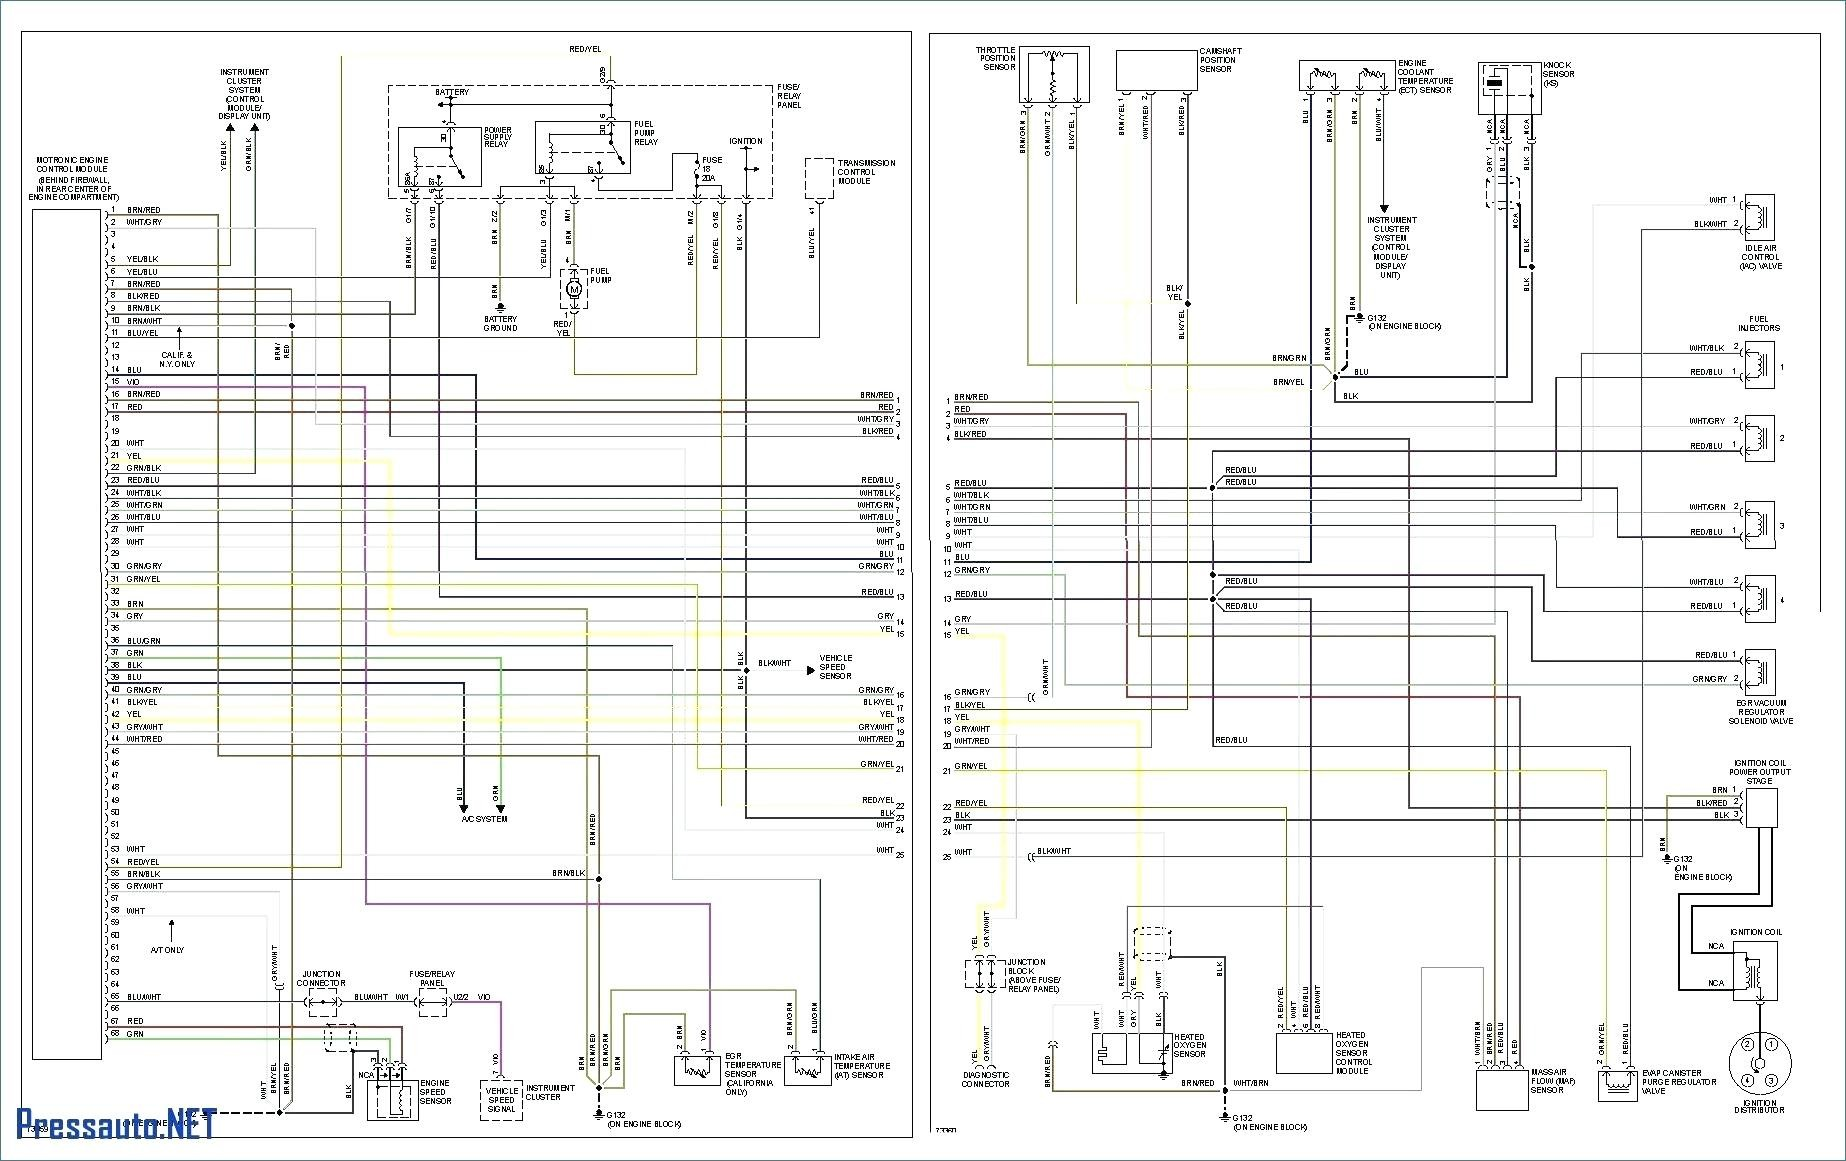 roger vivi ersaks: 2007 Vw Rabbit Wiring Diagram